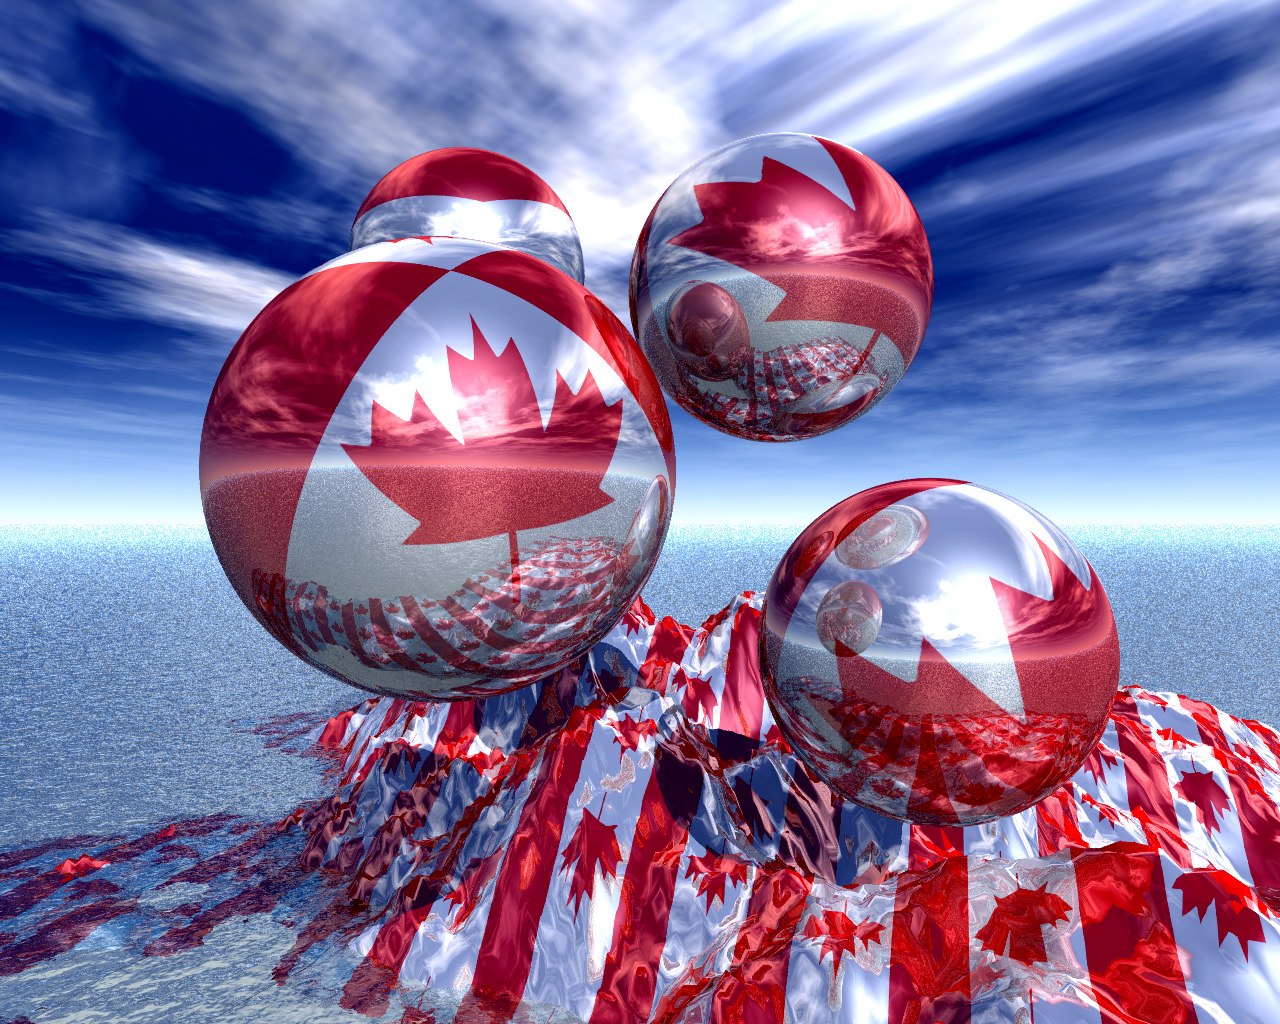 Canada Images Flag Of Canada Image Hd Wallpaper And Background